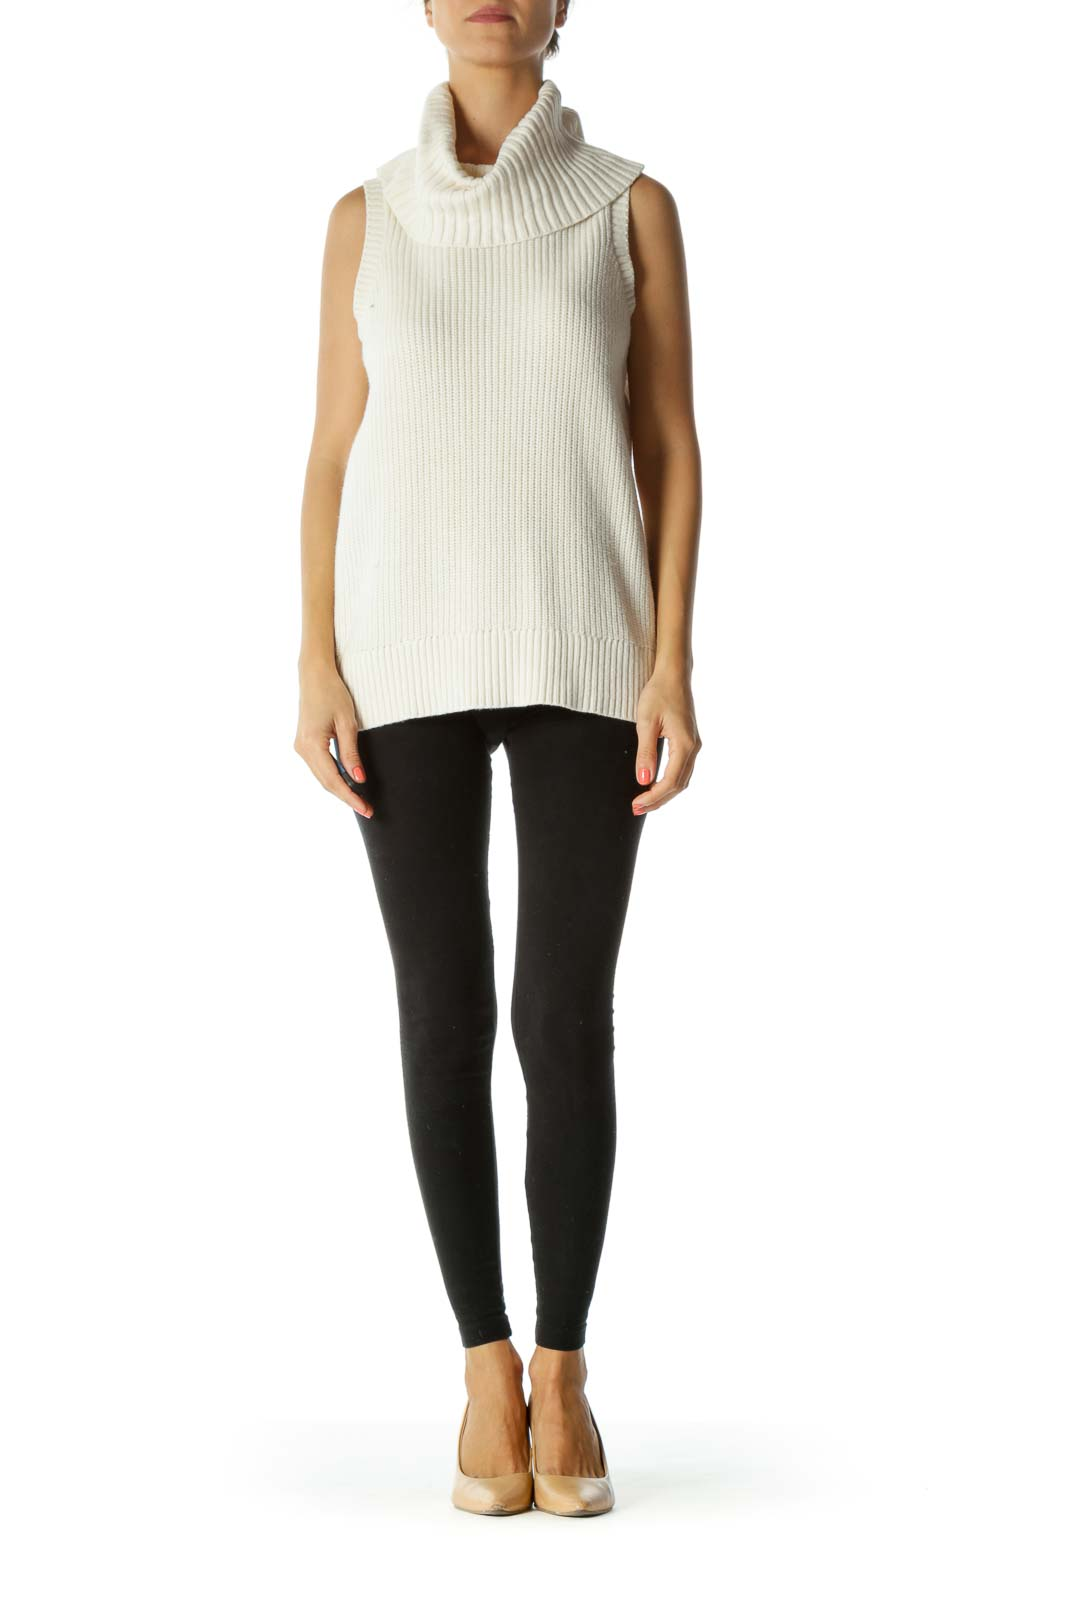 Cream Ribbed Turtle Neck Sleeveless Stretch Knit Top